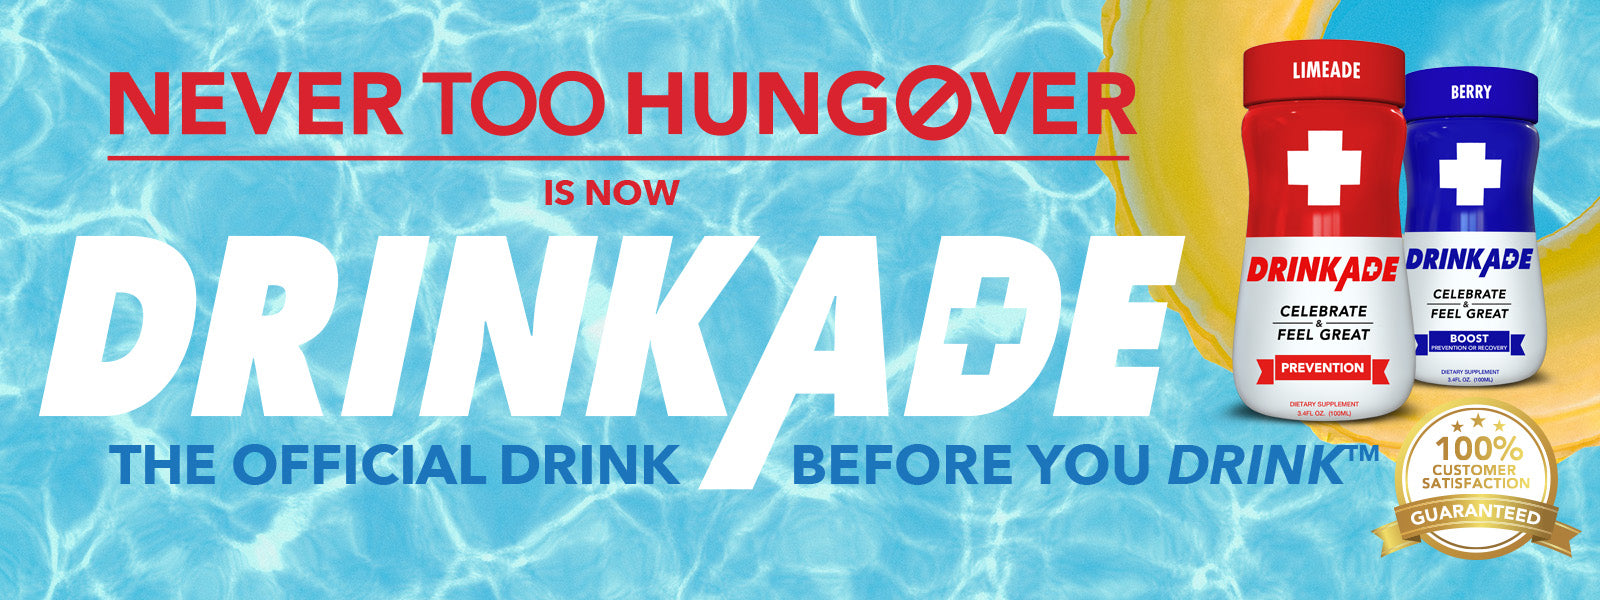 Never Too Hungover is now DrinkAde